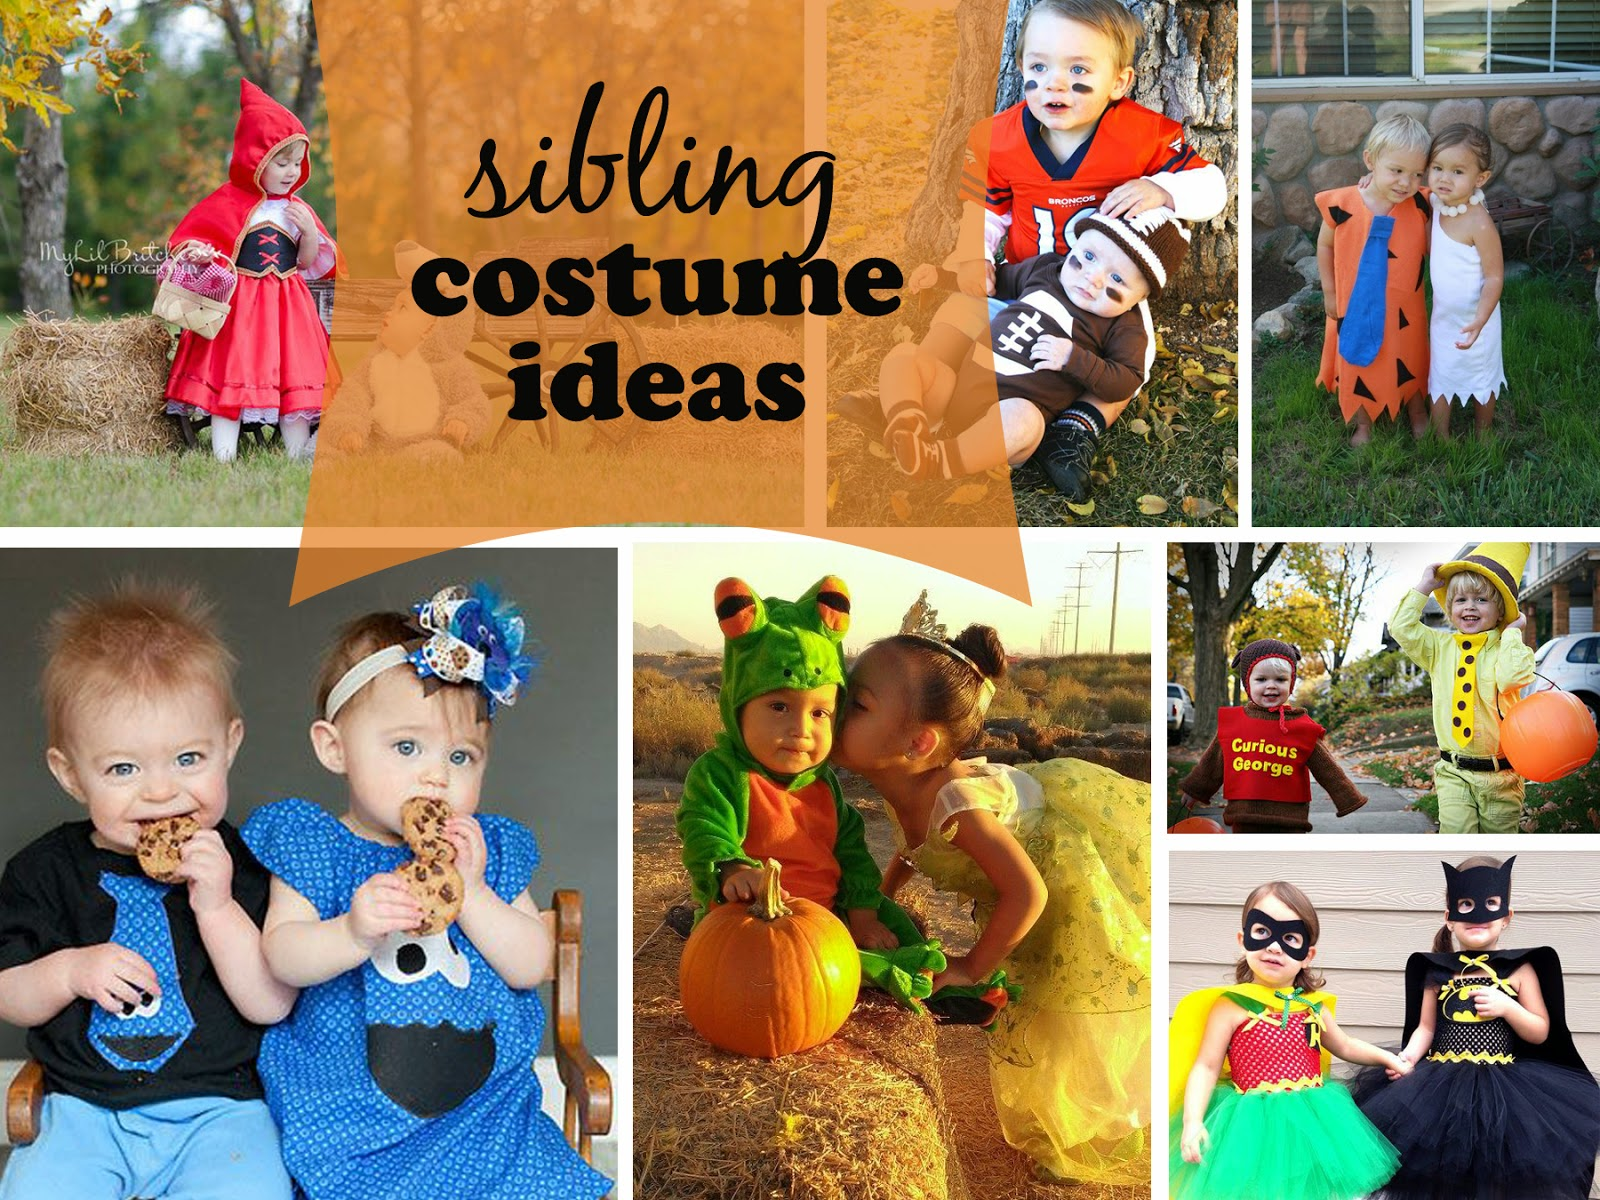 Cute Sibling Costume Ideas  sc 1 st  One Whimsy Lane & Cute Sibling Costume Ideas - One Whimsy Lane